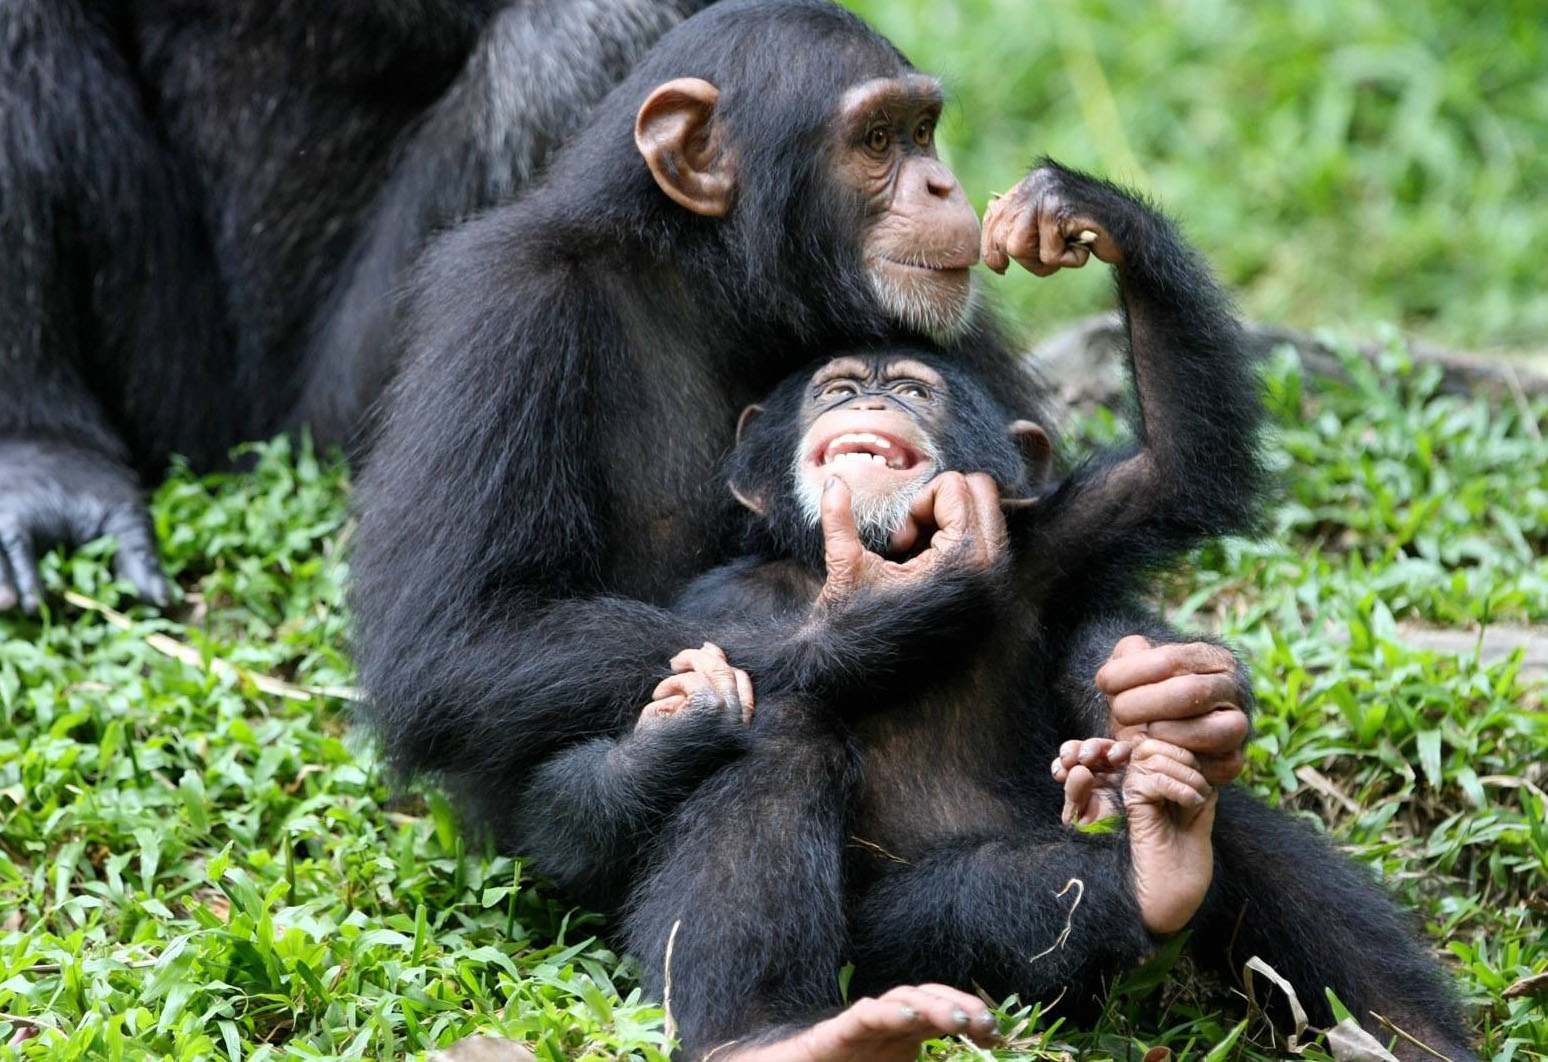 A Mother Chimp and its young one